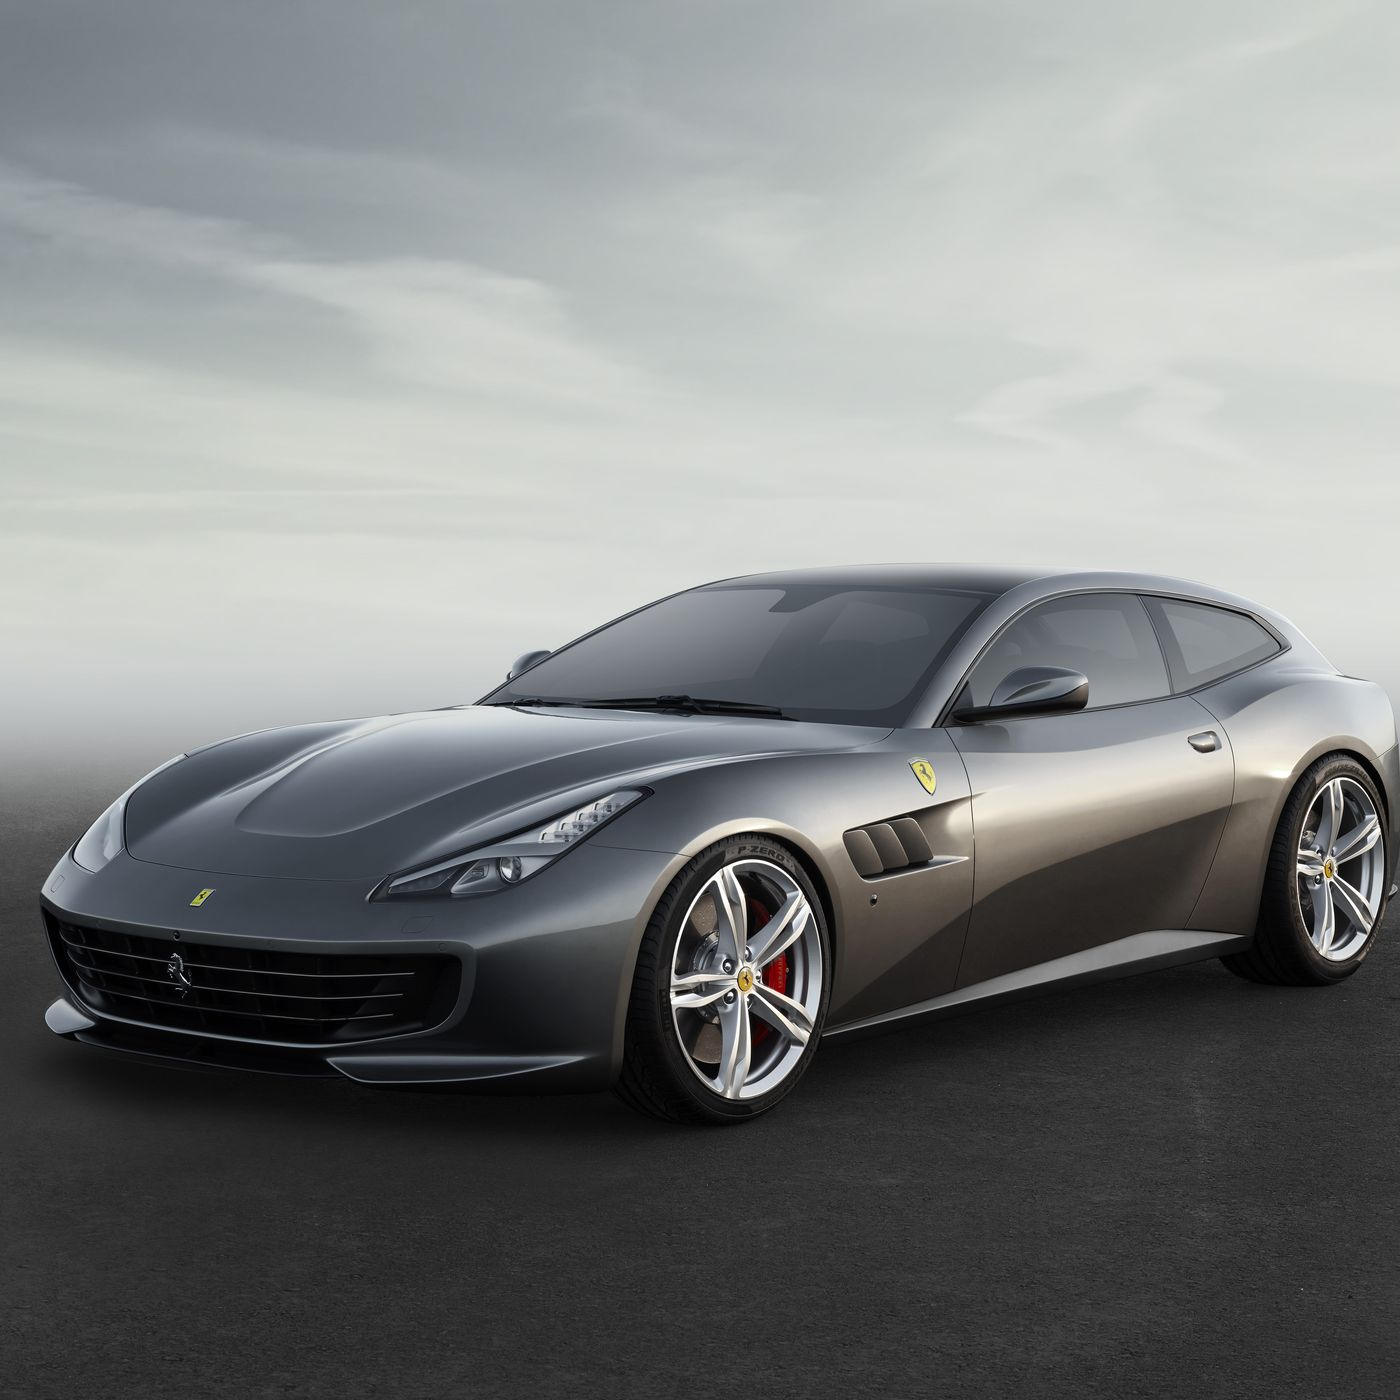 The Closest Thing To A Ferrari Family Car Is Now The Gtc4lusso The Verge